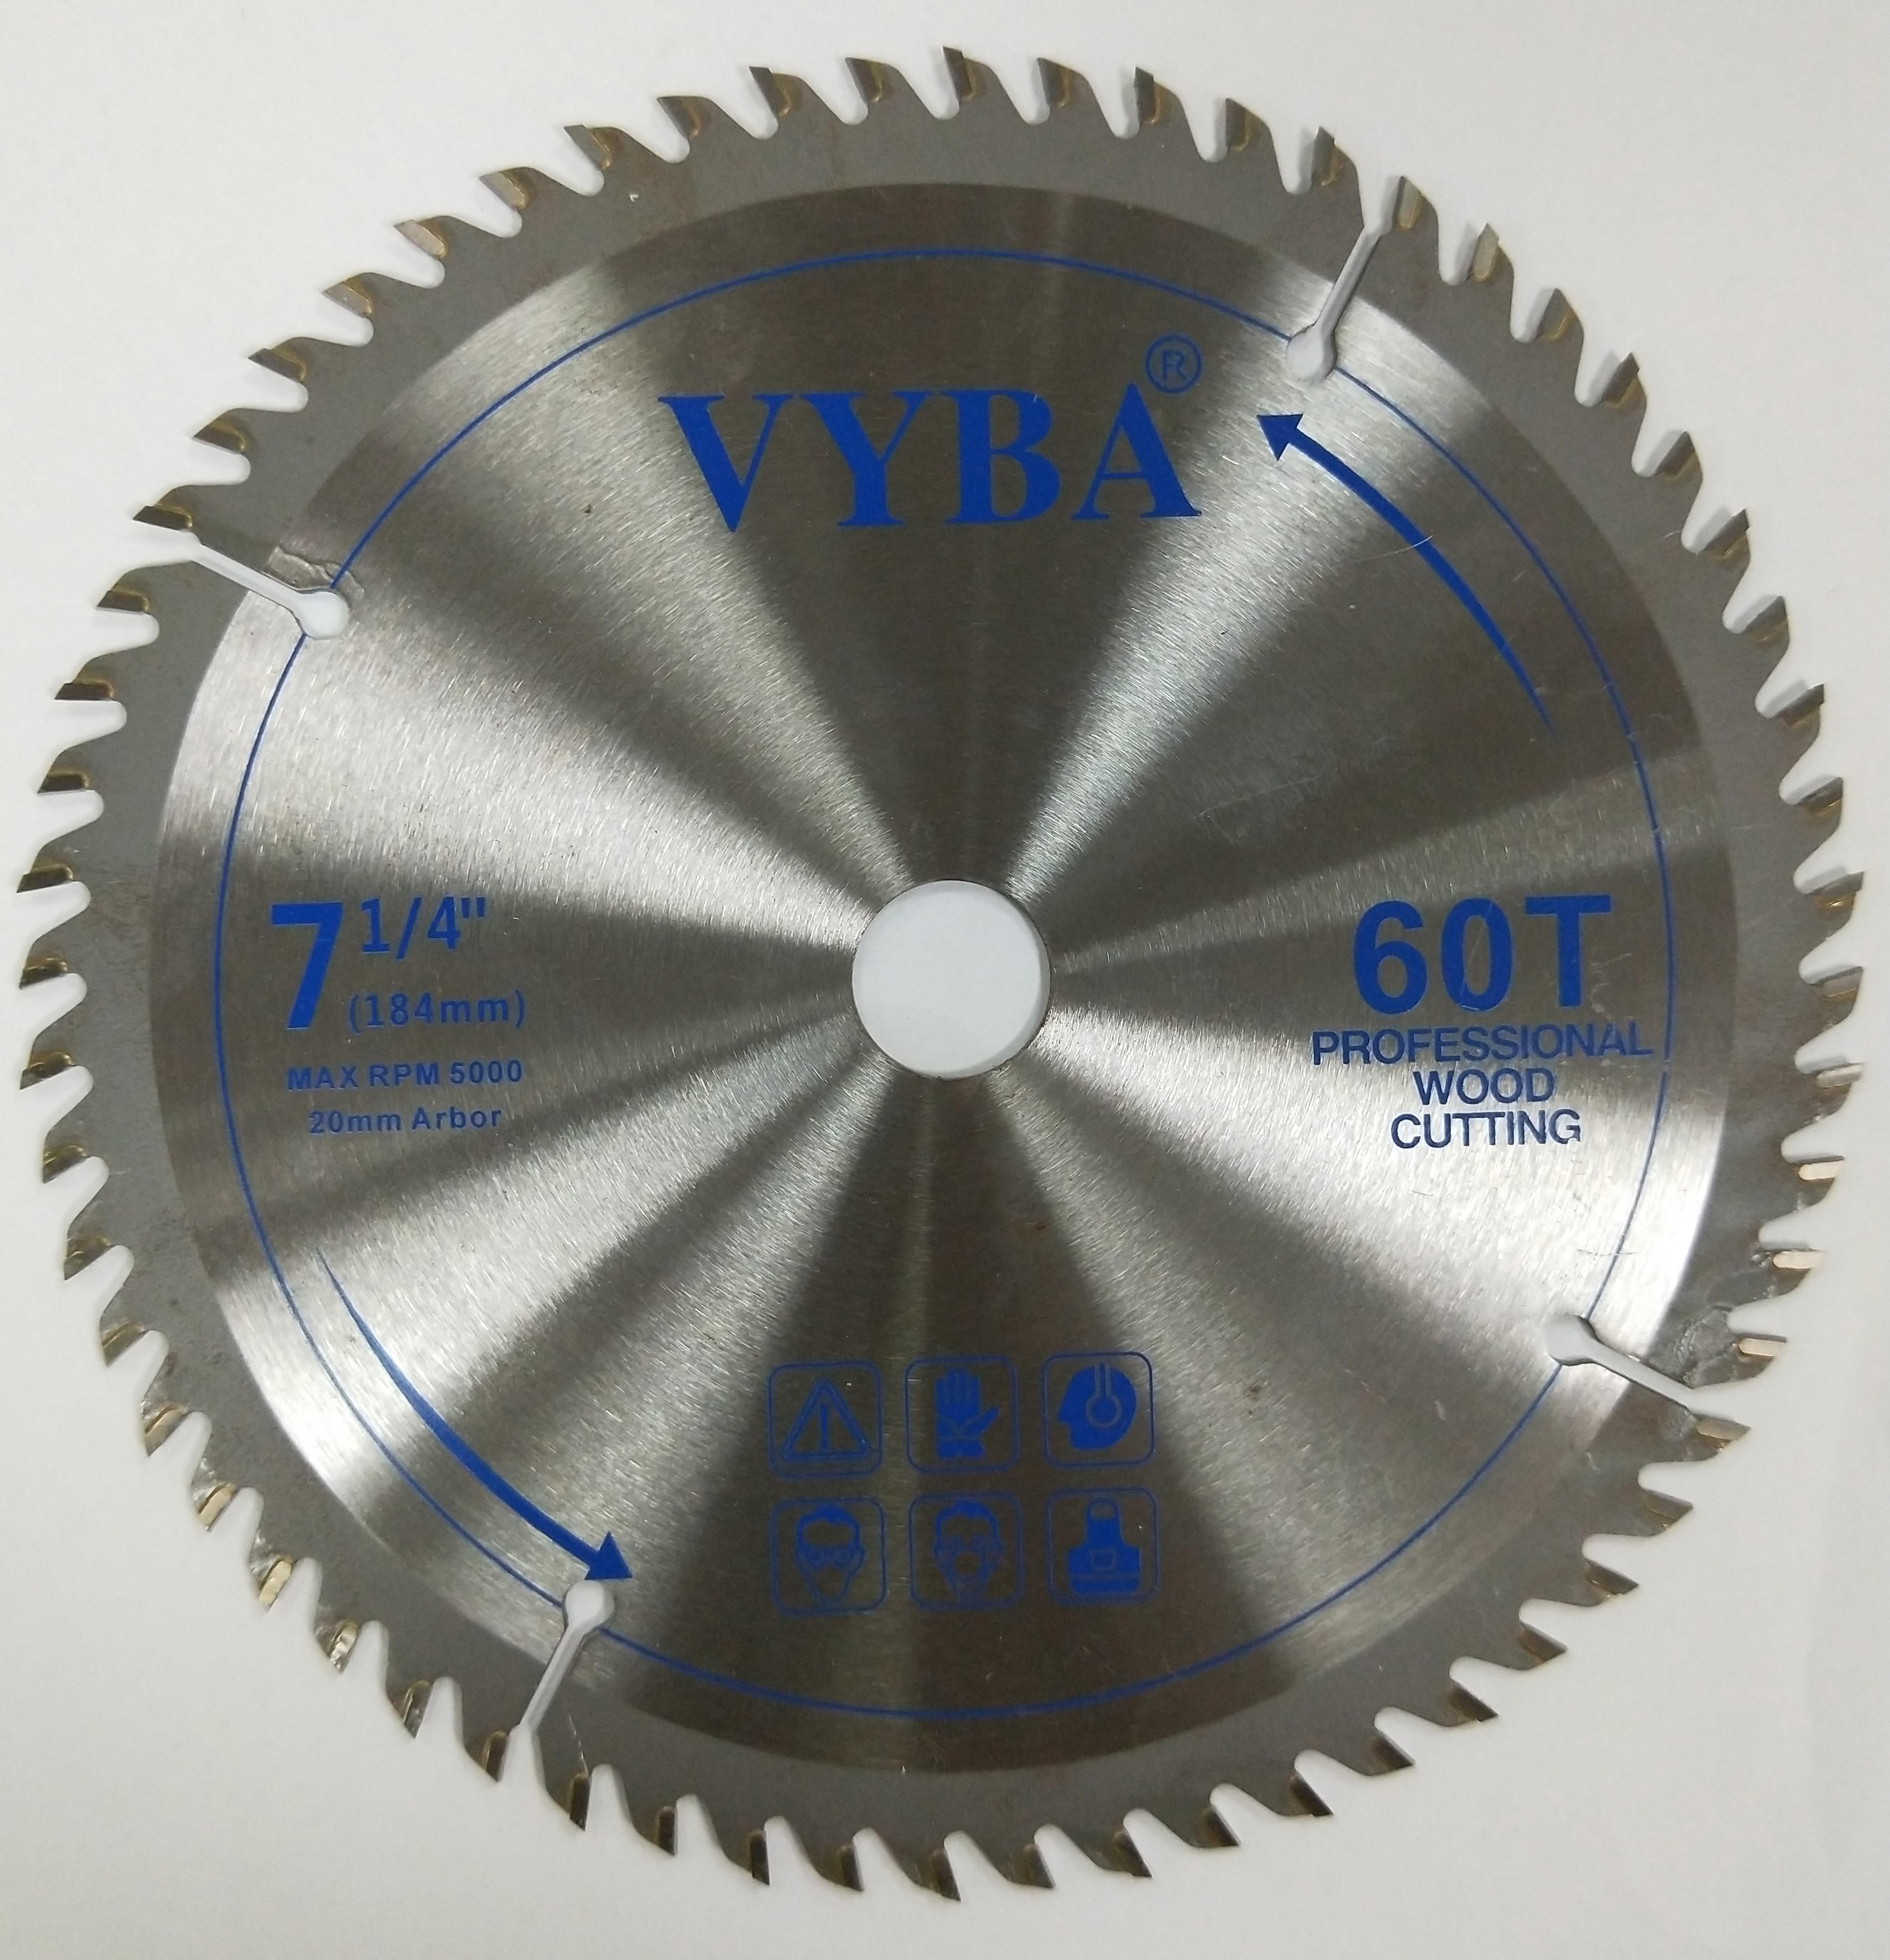 7 1/4 inch TCT round saw blades for wood